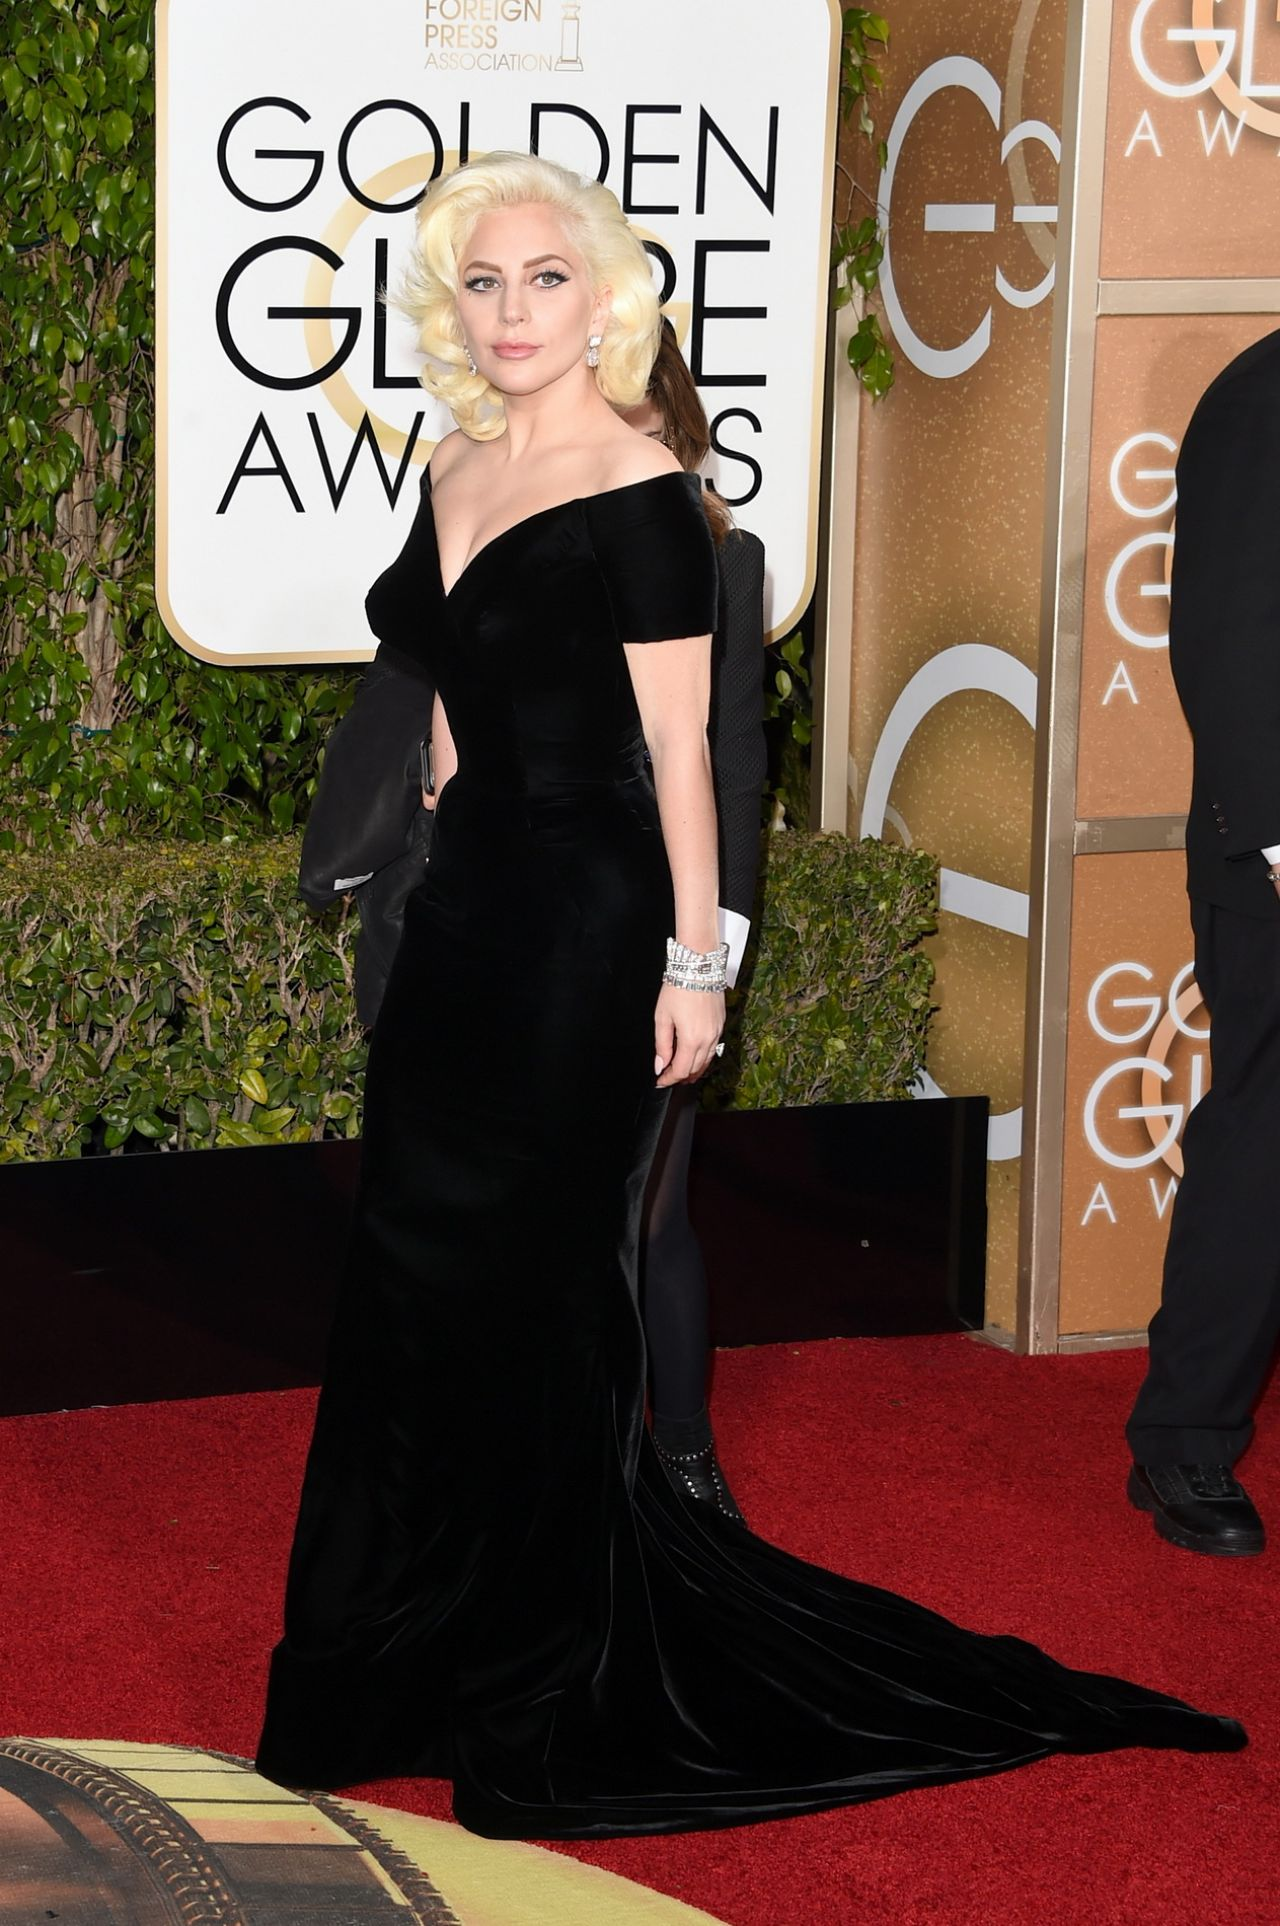 lady-gaga-2016-golden-globe-awards-in-beverly-hills-9